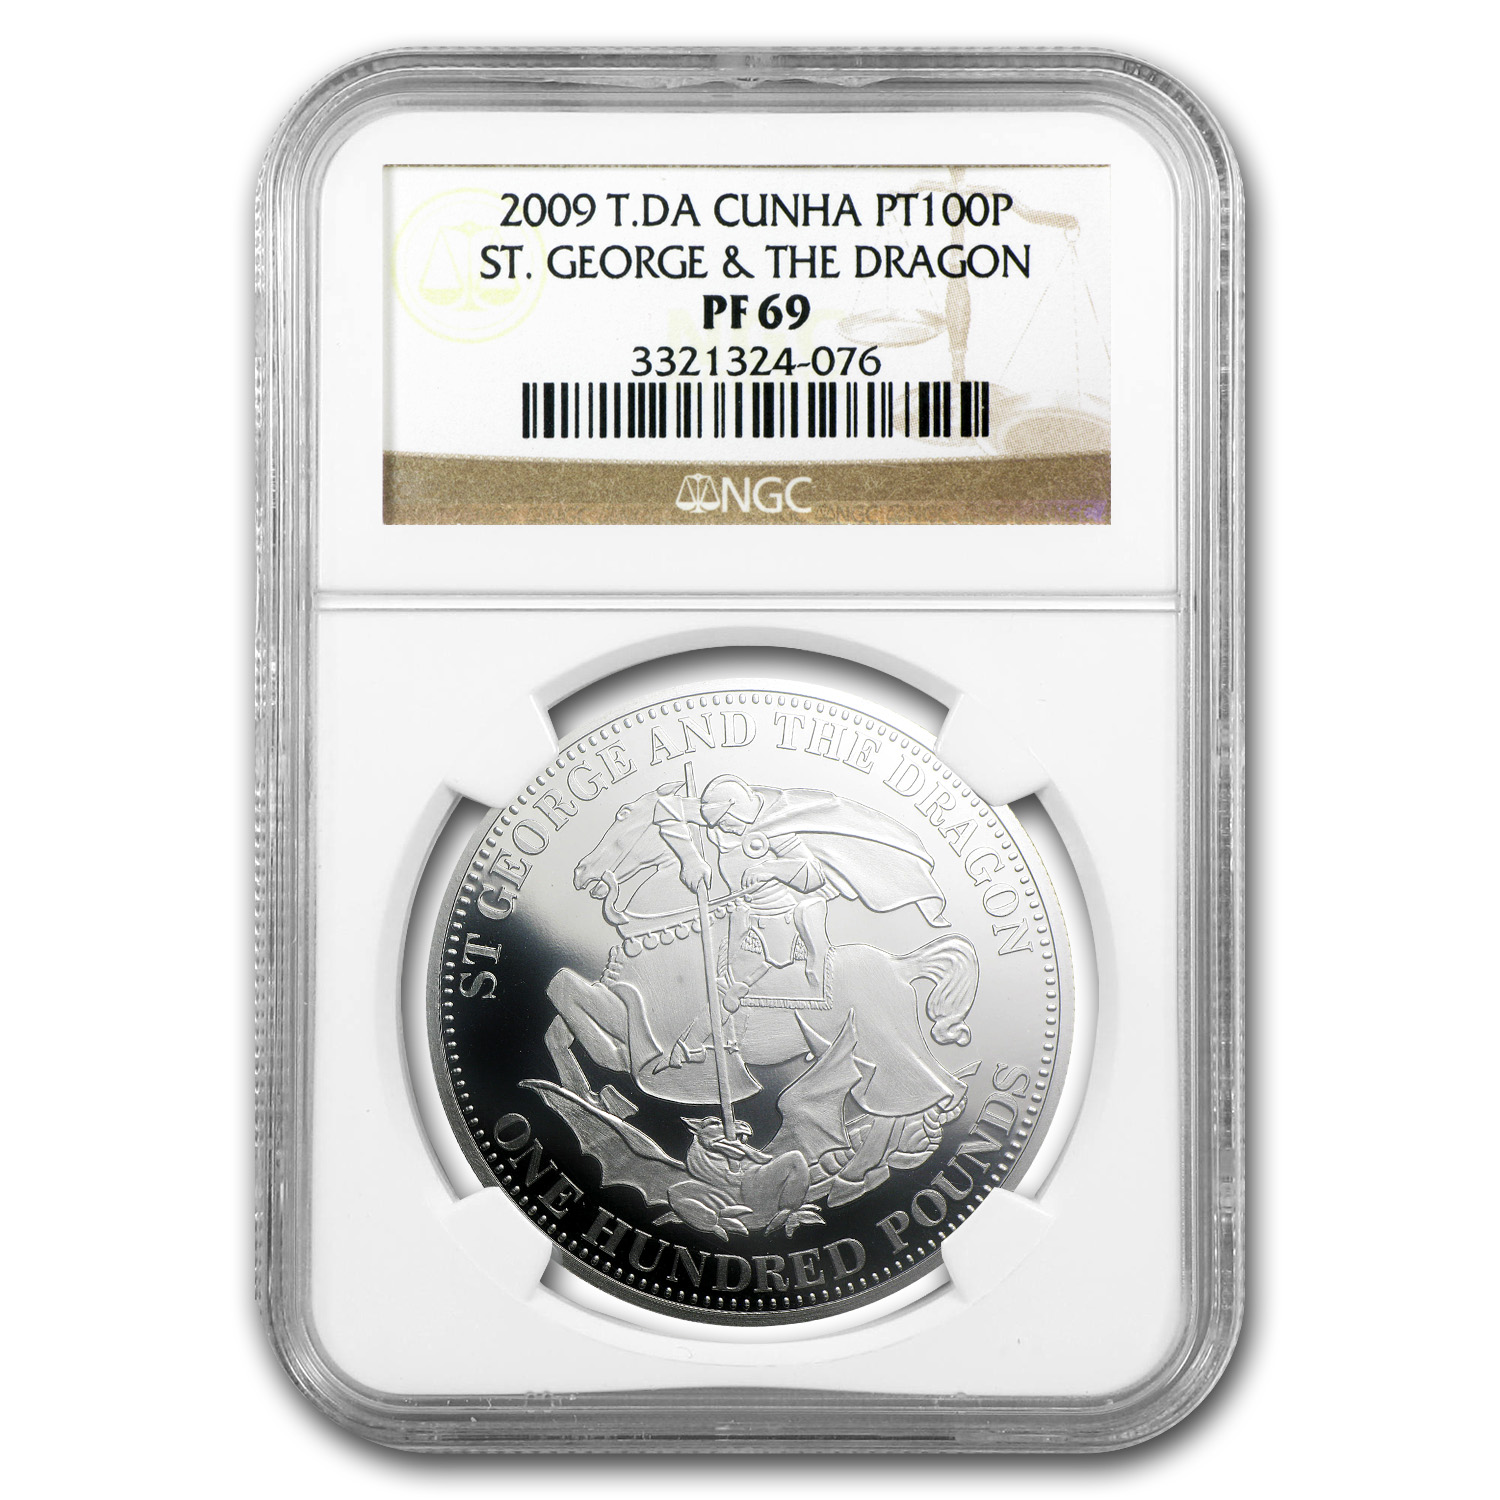 2009 T.DA Cunha 1 oz Platinum St. George & The Dragon PF-69 NGC